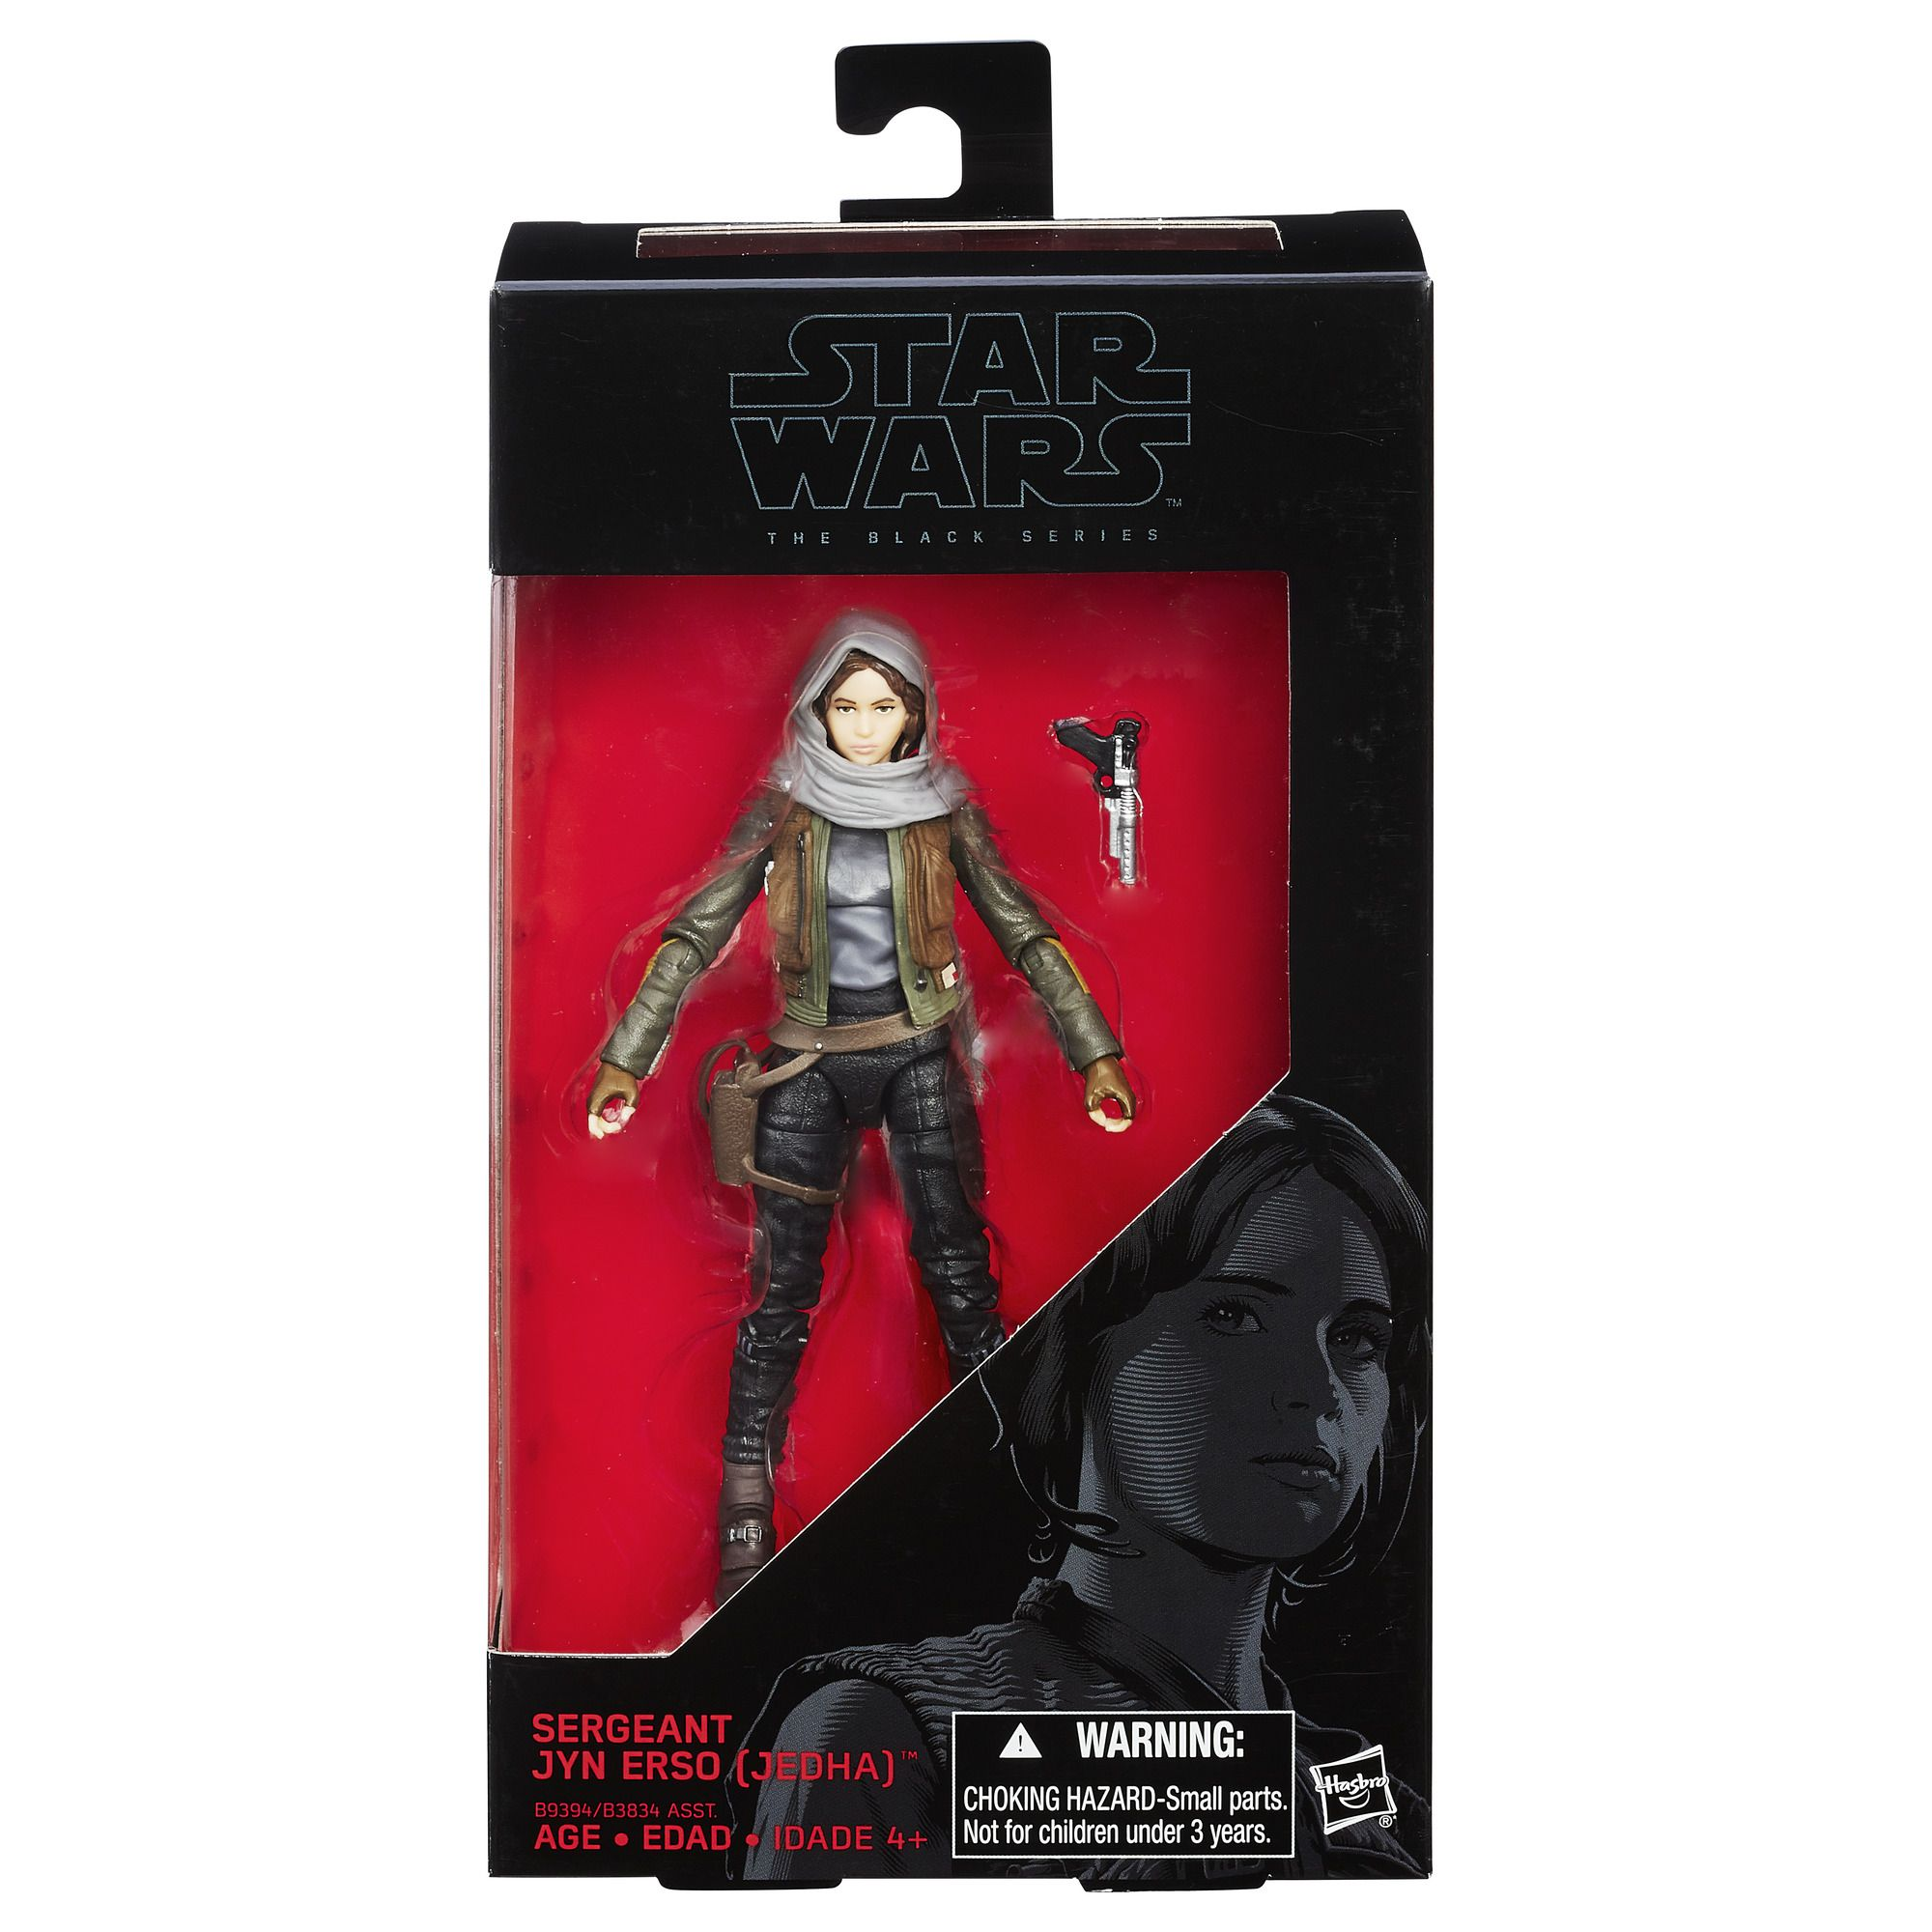 Star Wars The Black Series Sergeant Jyn Erso